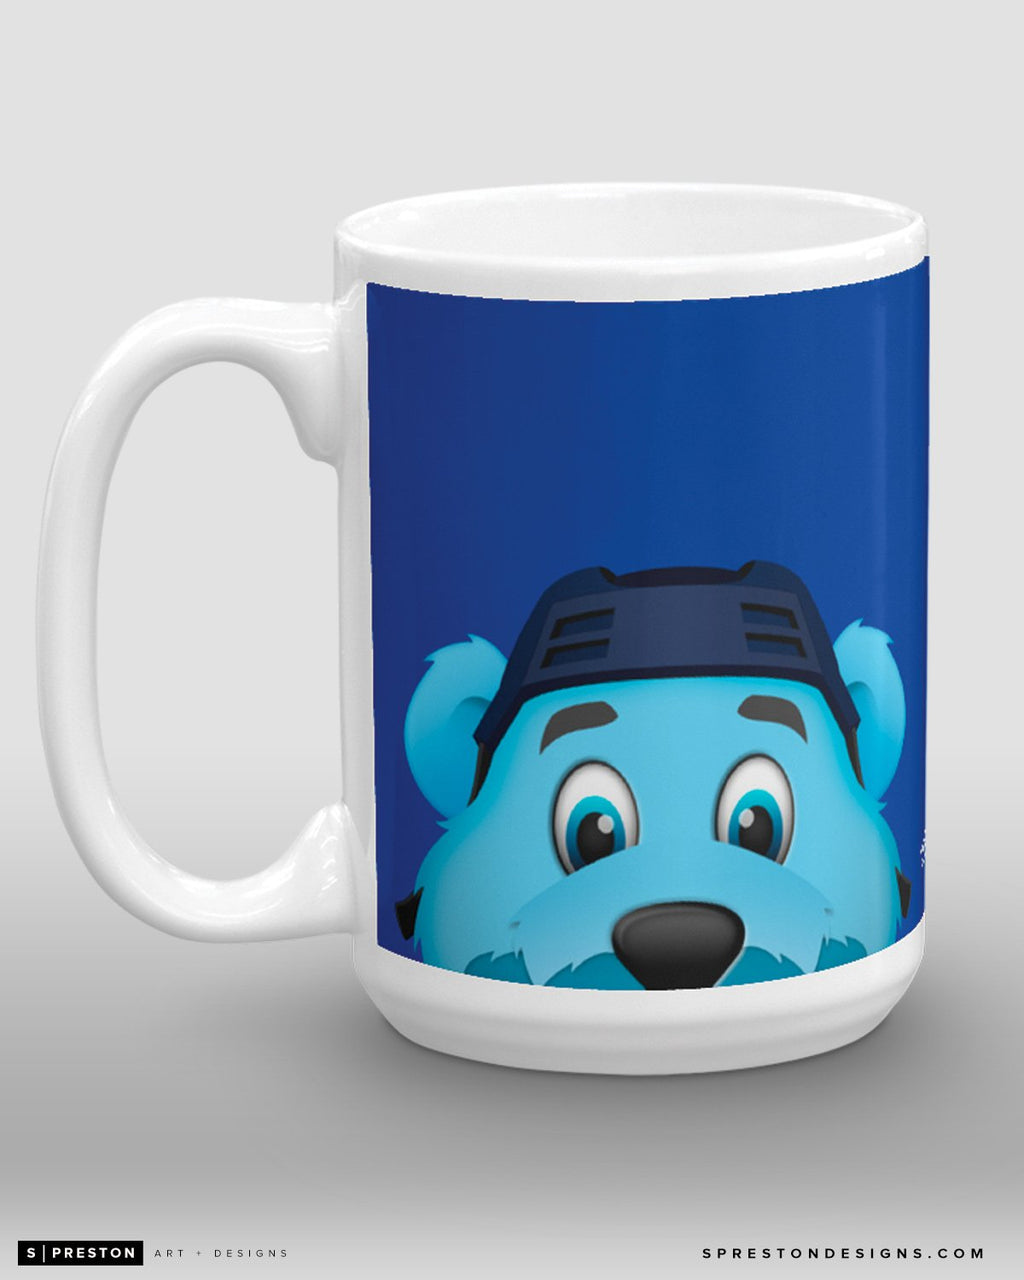 Minimalist Louie Coffee Mug - NHL Licensed - St. Louis Blues Mascot